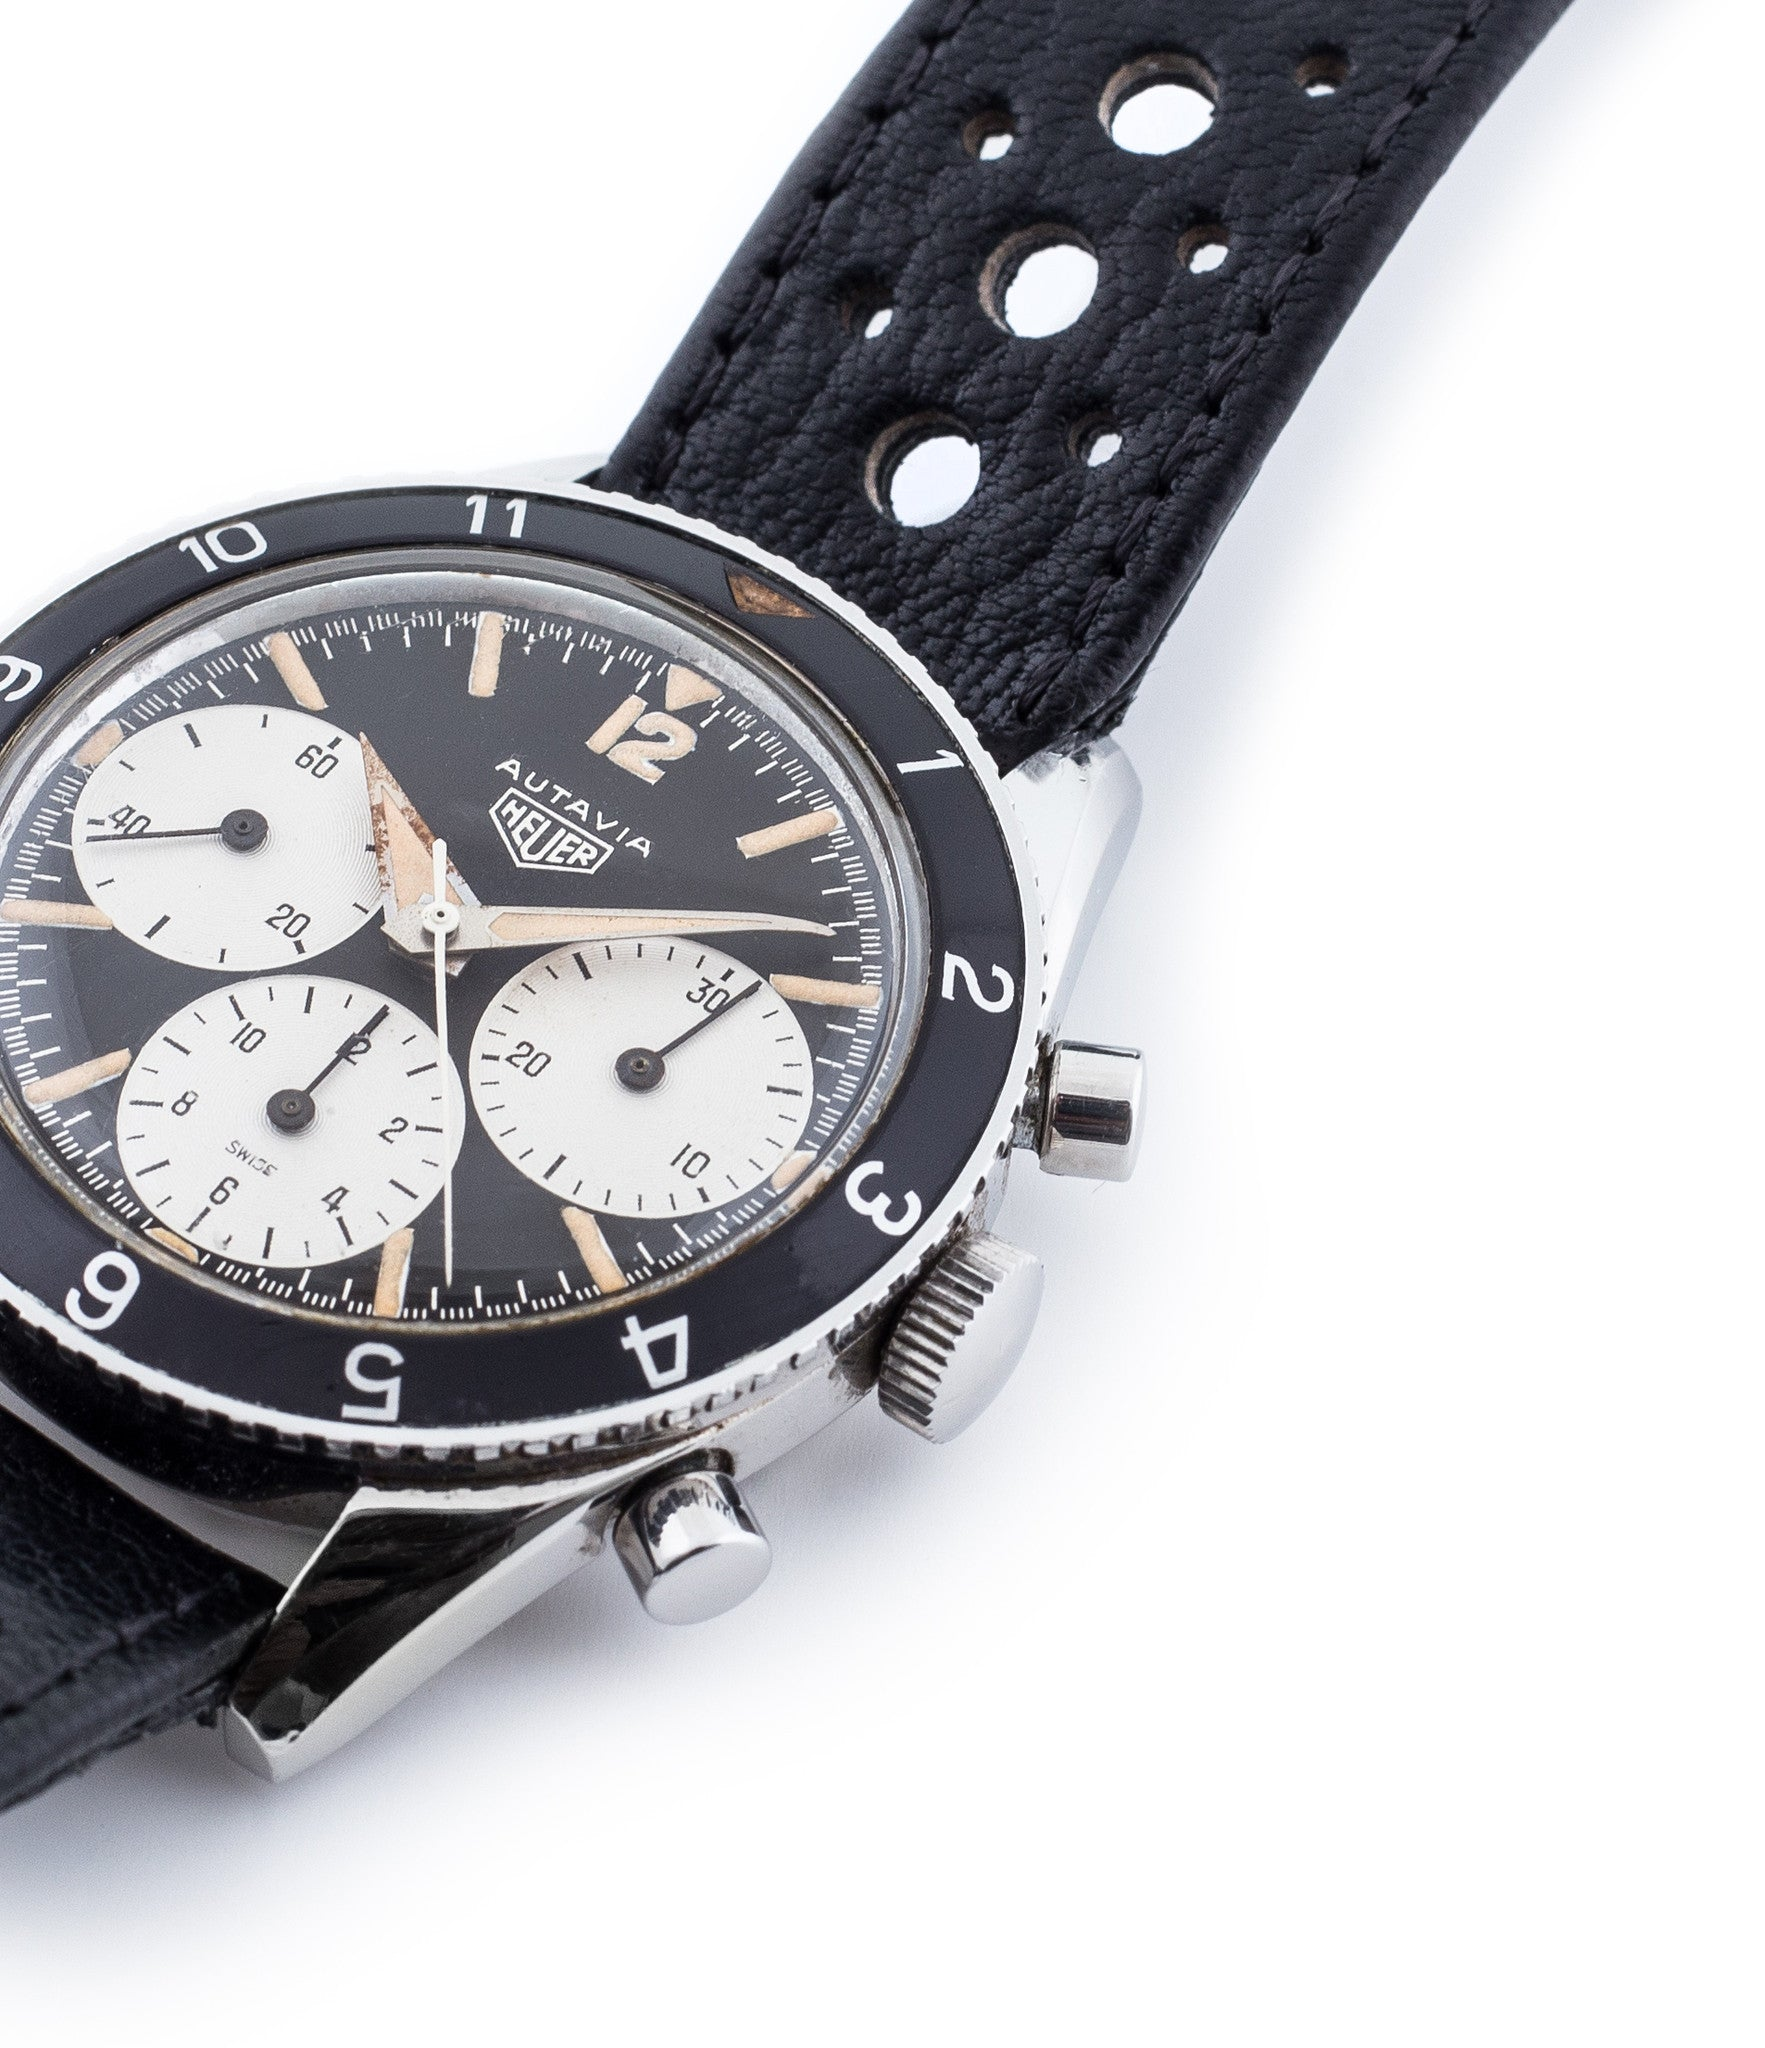 buy rare Heuer Autavia 2446 1st execution unrestored dial vintage sport steel watch with Valjoux 72 manual movement for sale online at WATCH XCHANGE London